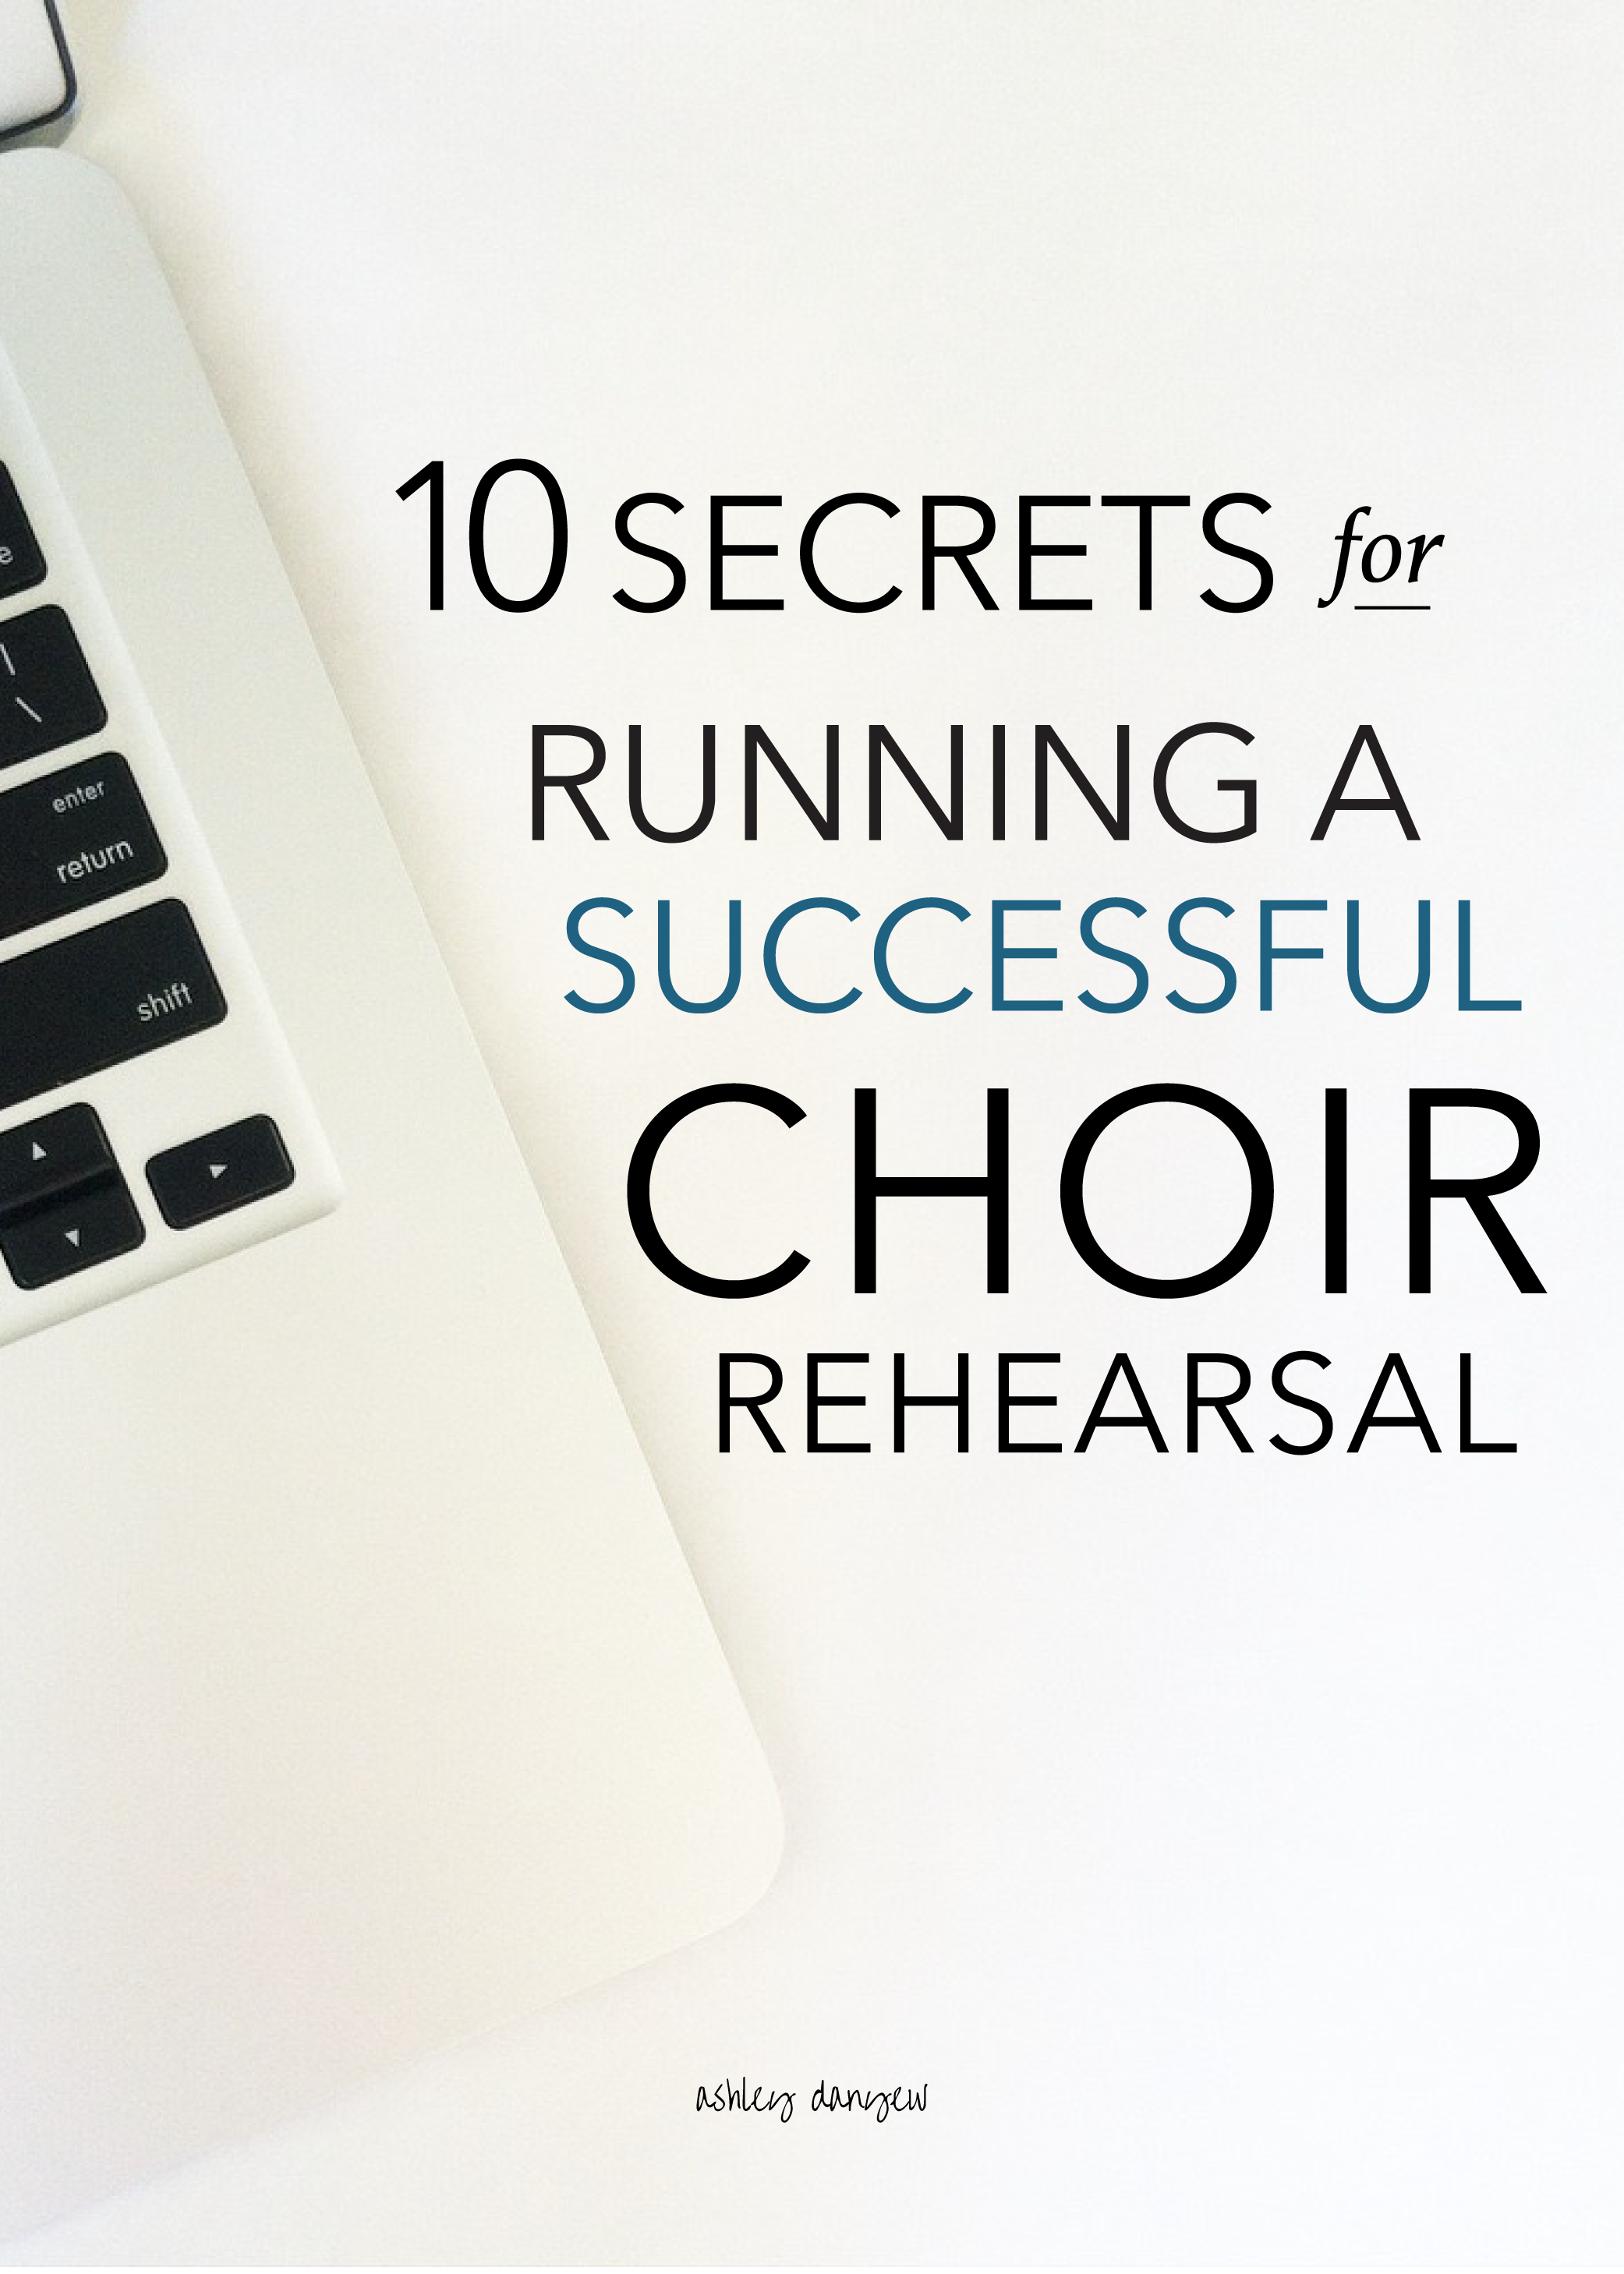 10-Secrets-for-Running-a-Successful-Choir-Rehearsal-01.png